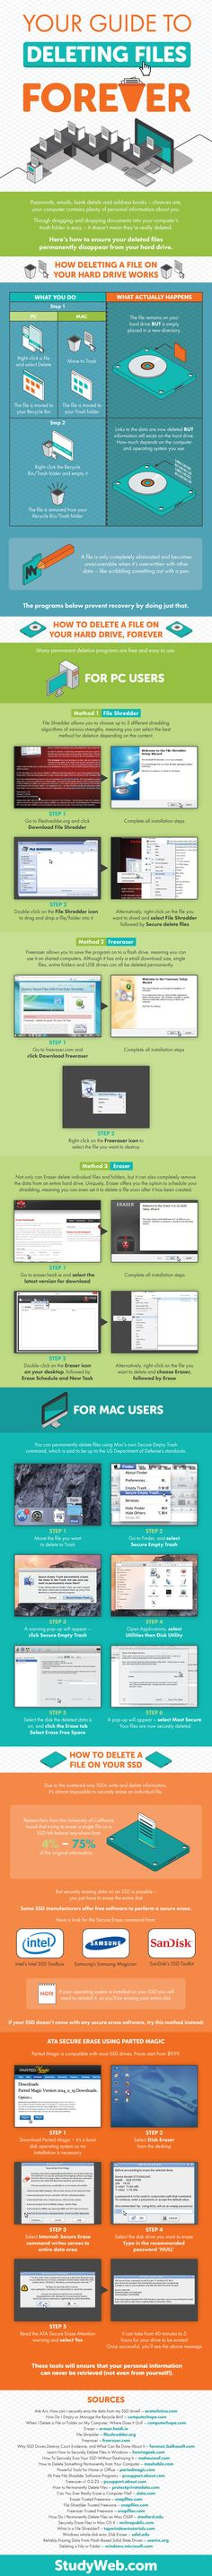 Your Guide to Deleting Files Forever #infographic